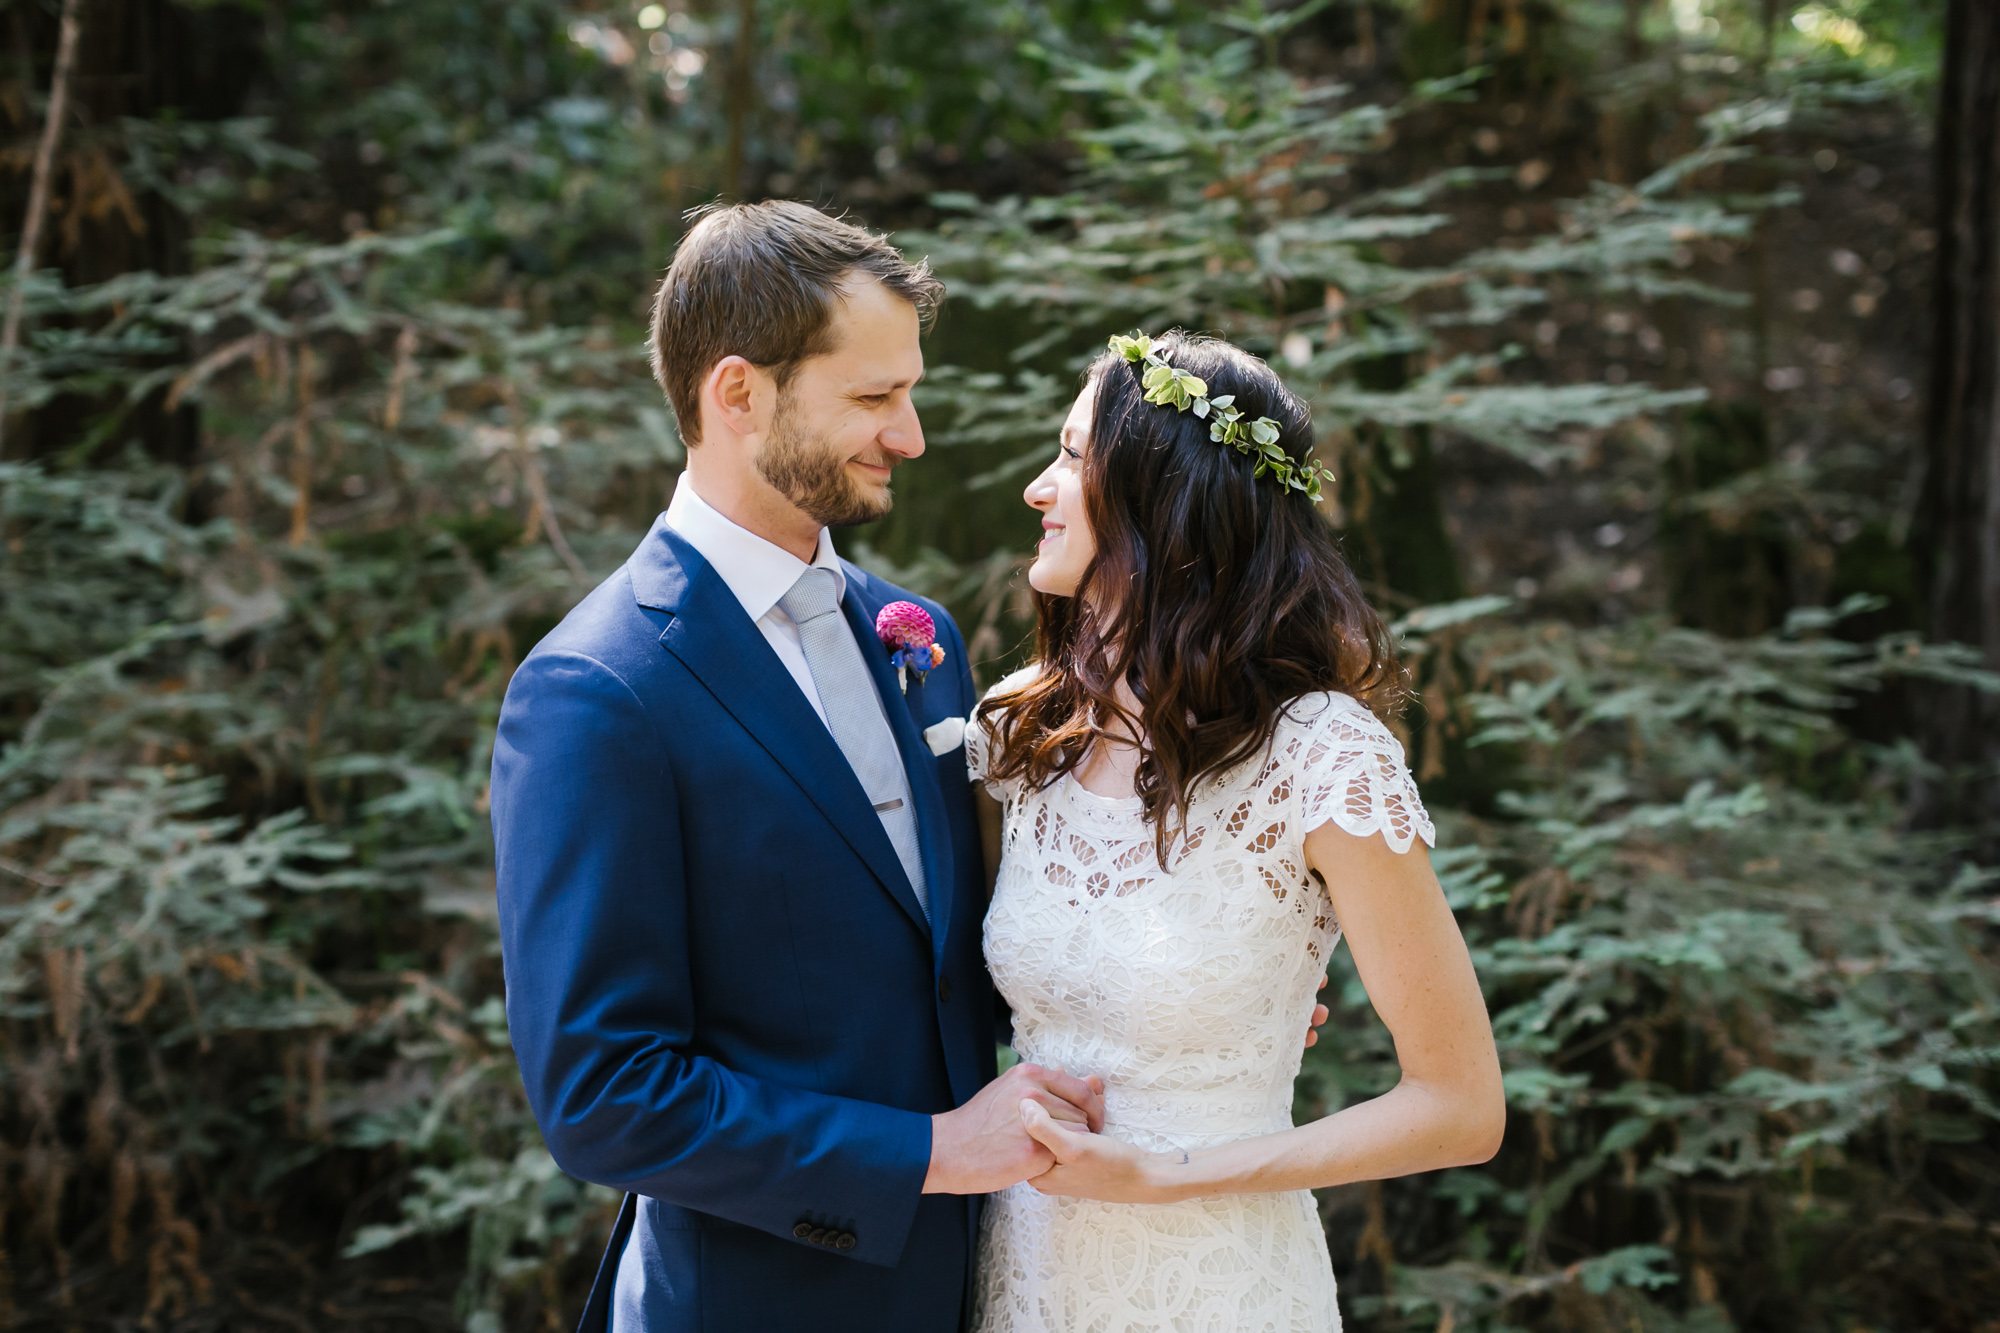 Groom in blue suit holds hands with his bride in a lace dress and flower crown